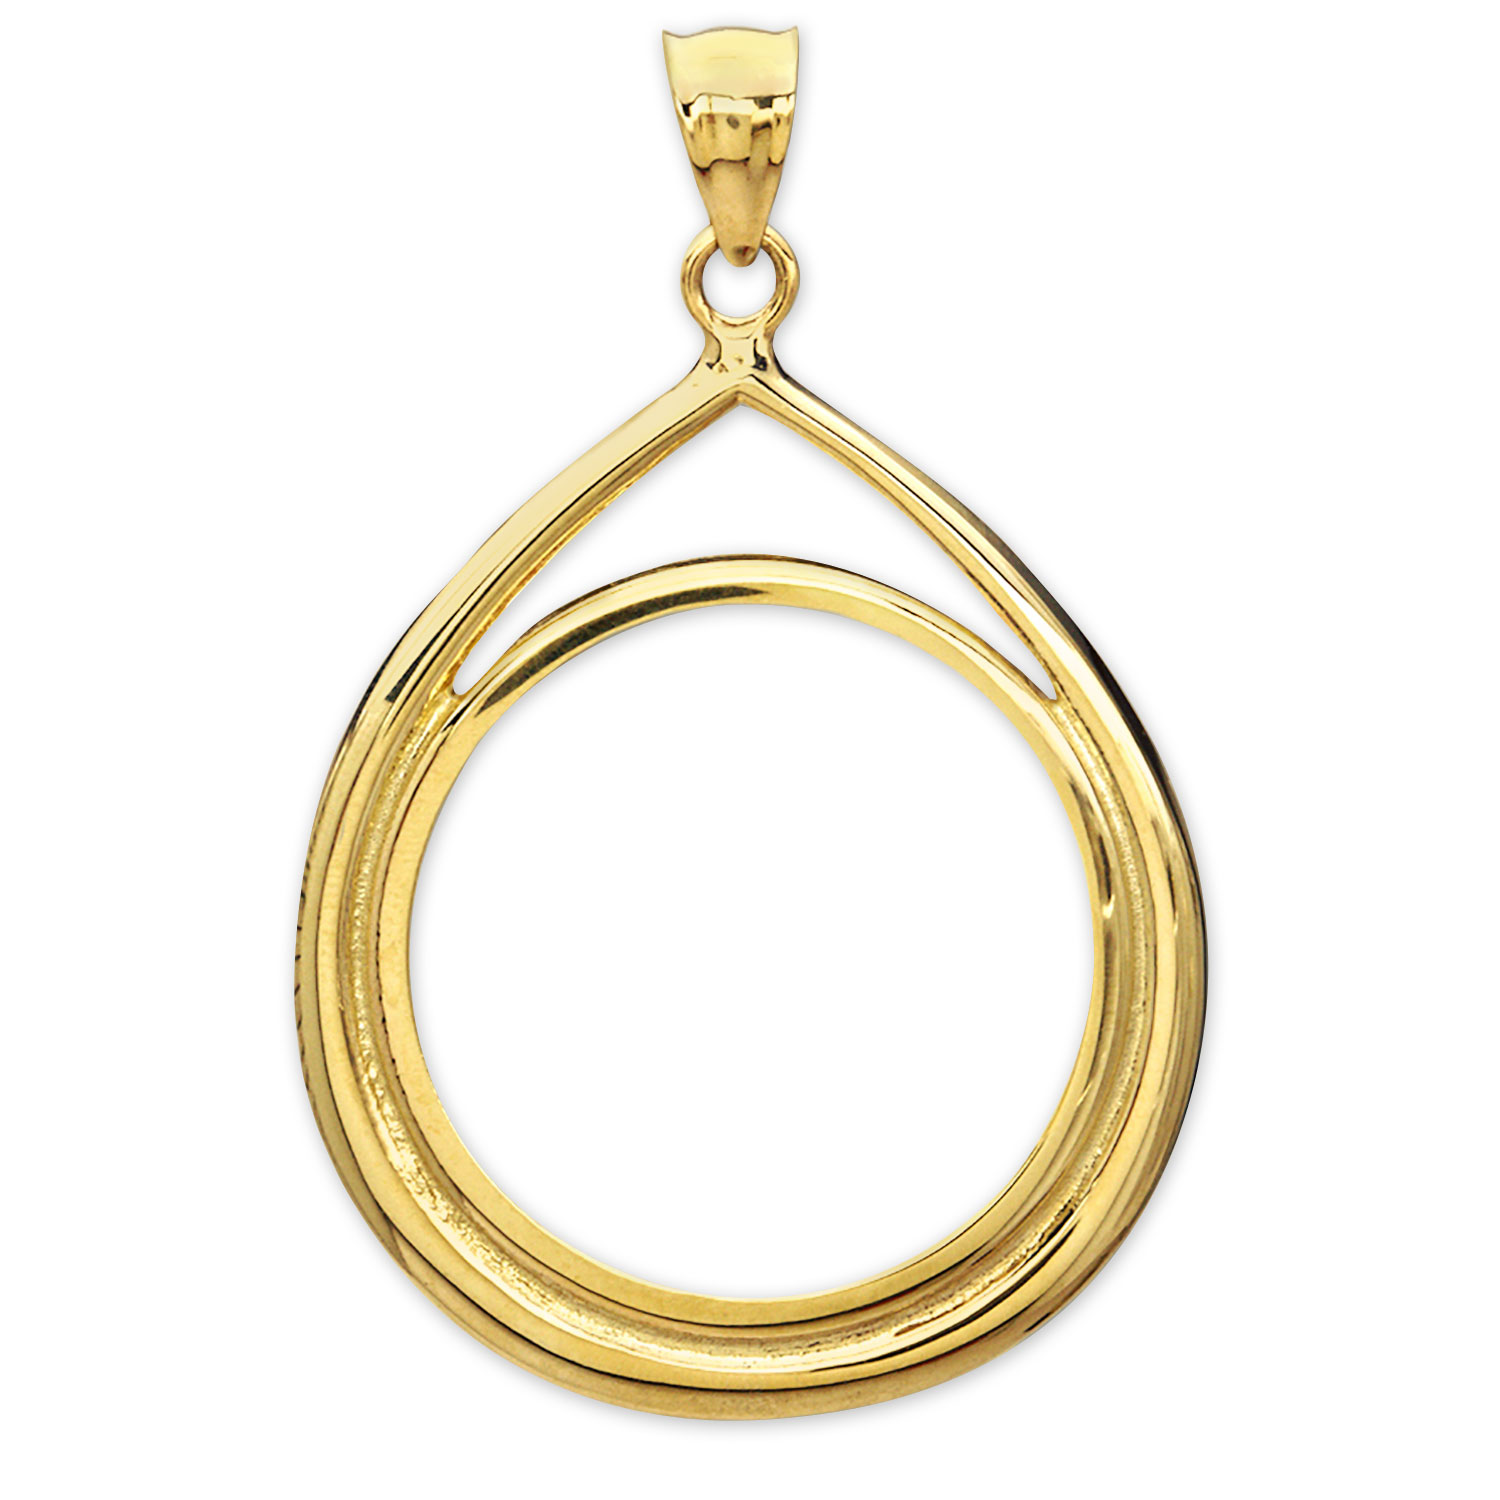 14K Gold Prong Tear Drop Coin Bezel - 27 mm